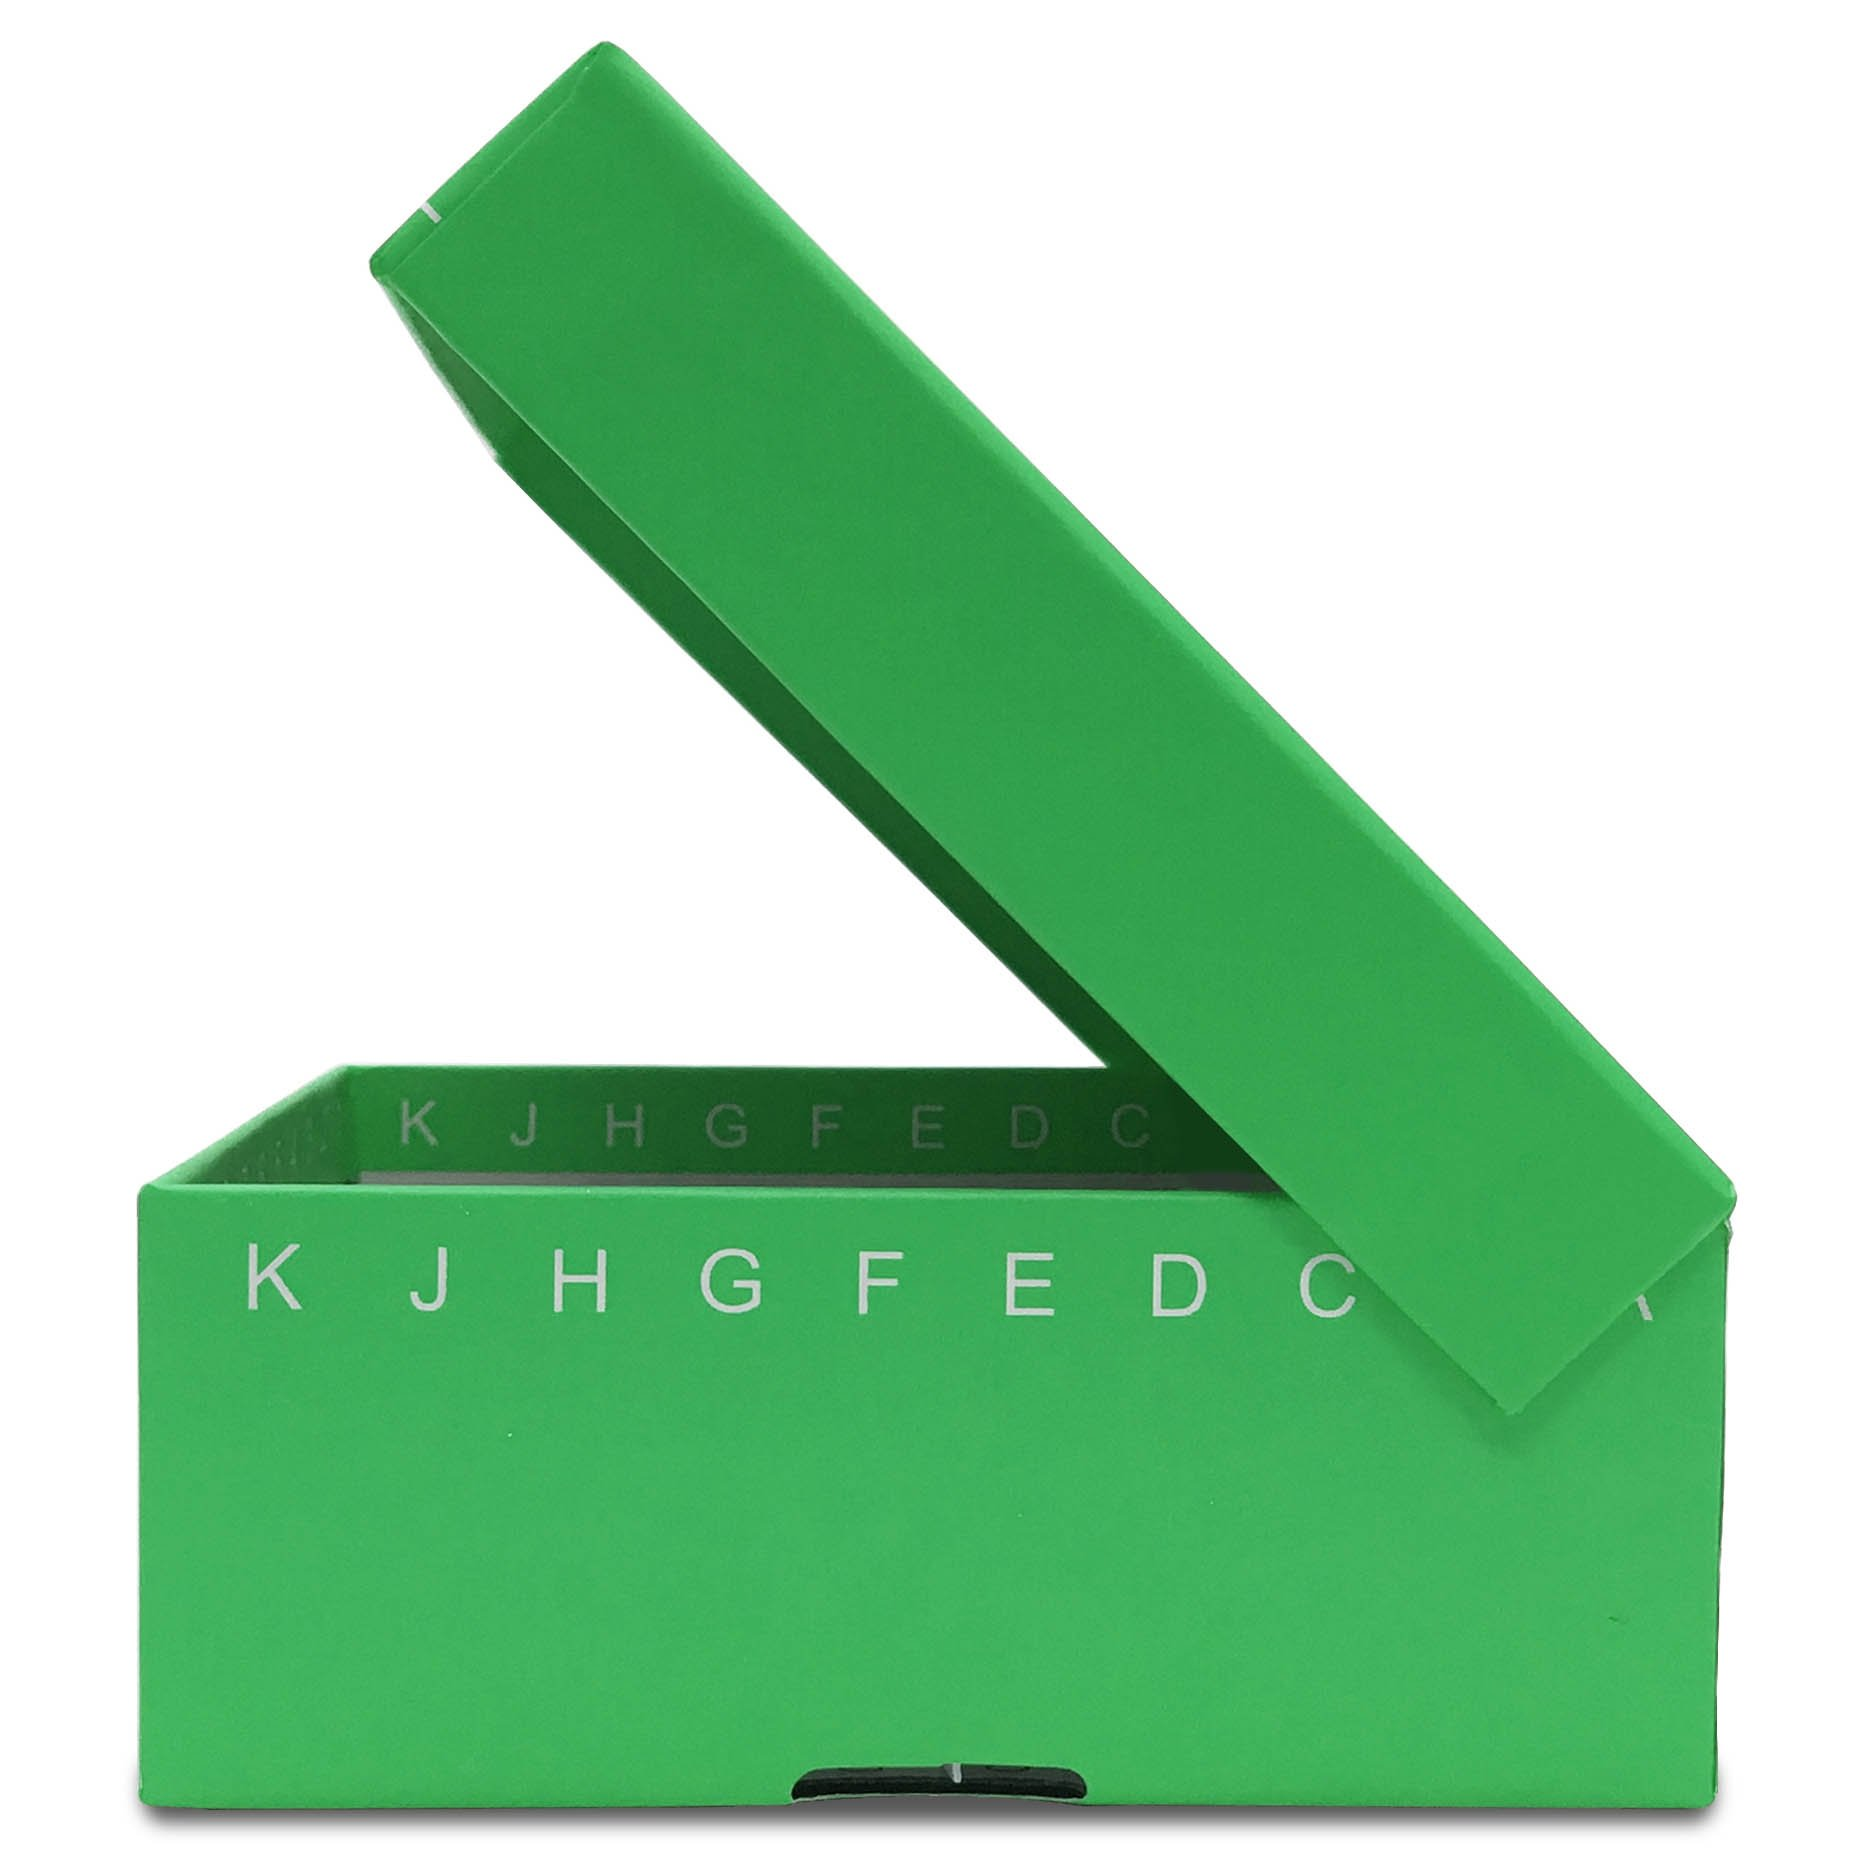 FlipTop Cardboard Freezer Box 100-Place with Attached Hinged Lid - Green (Pack of 5)